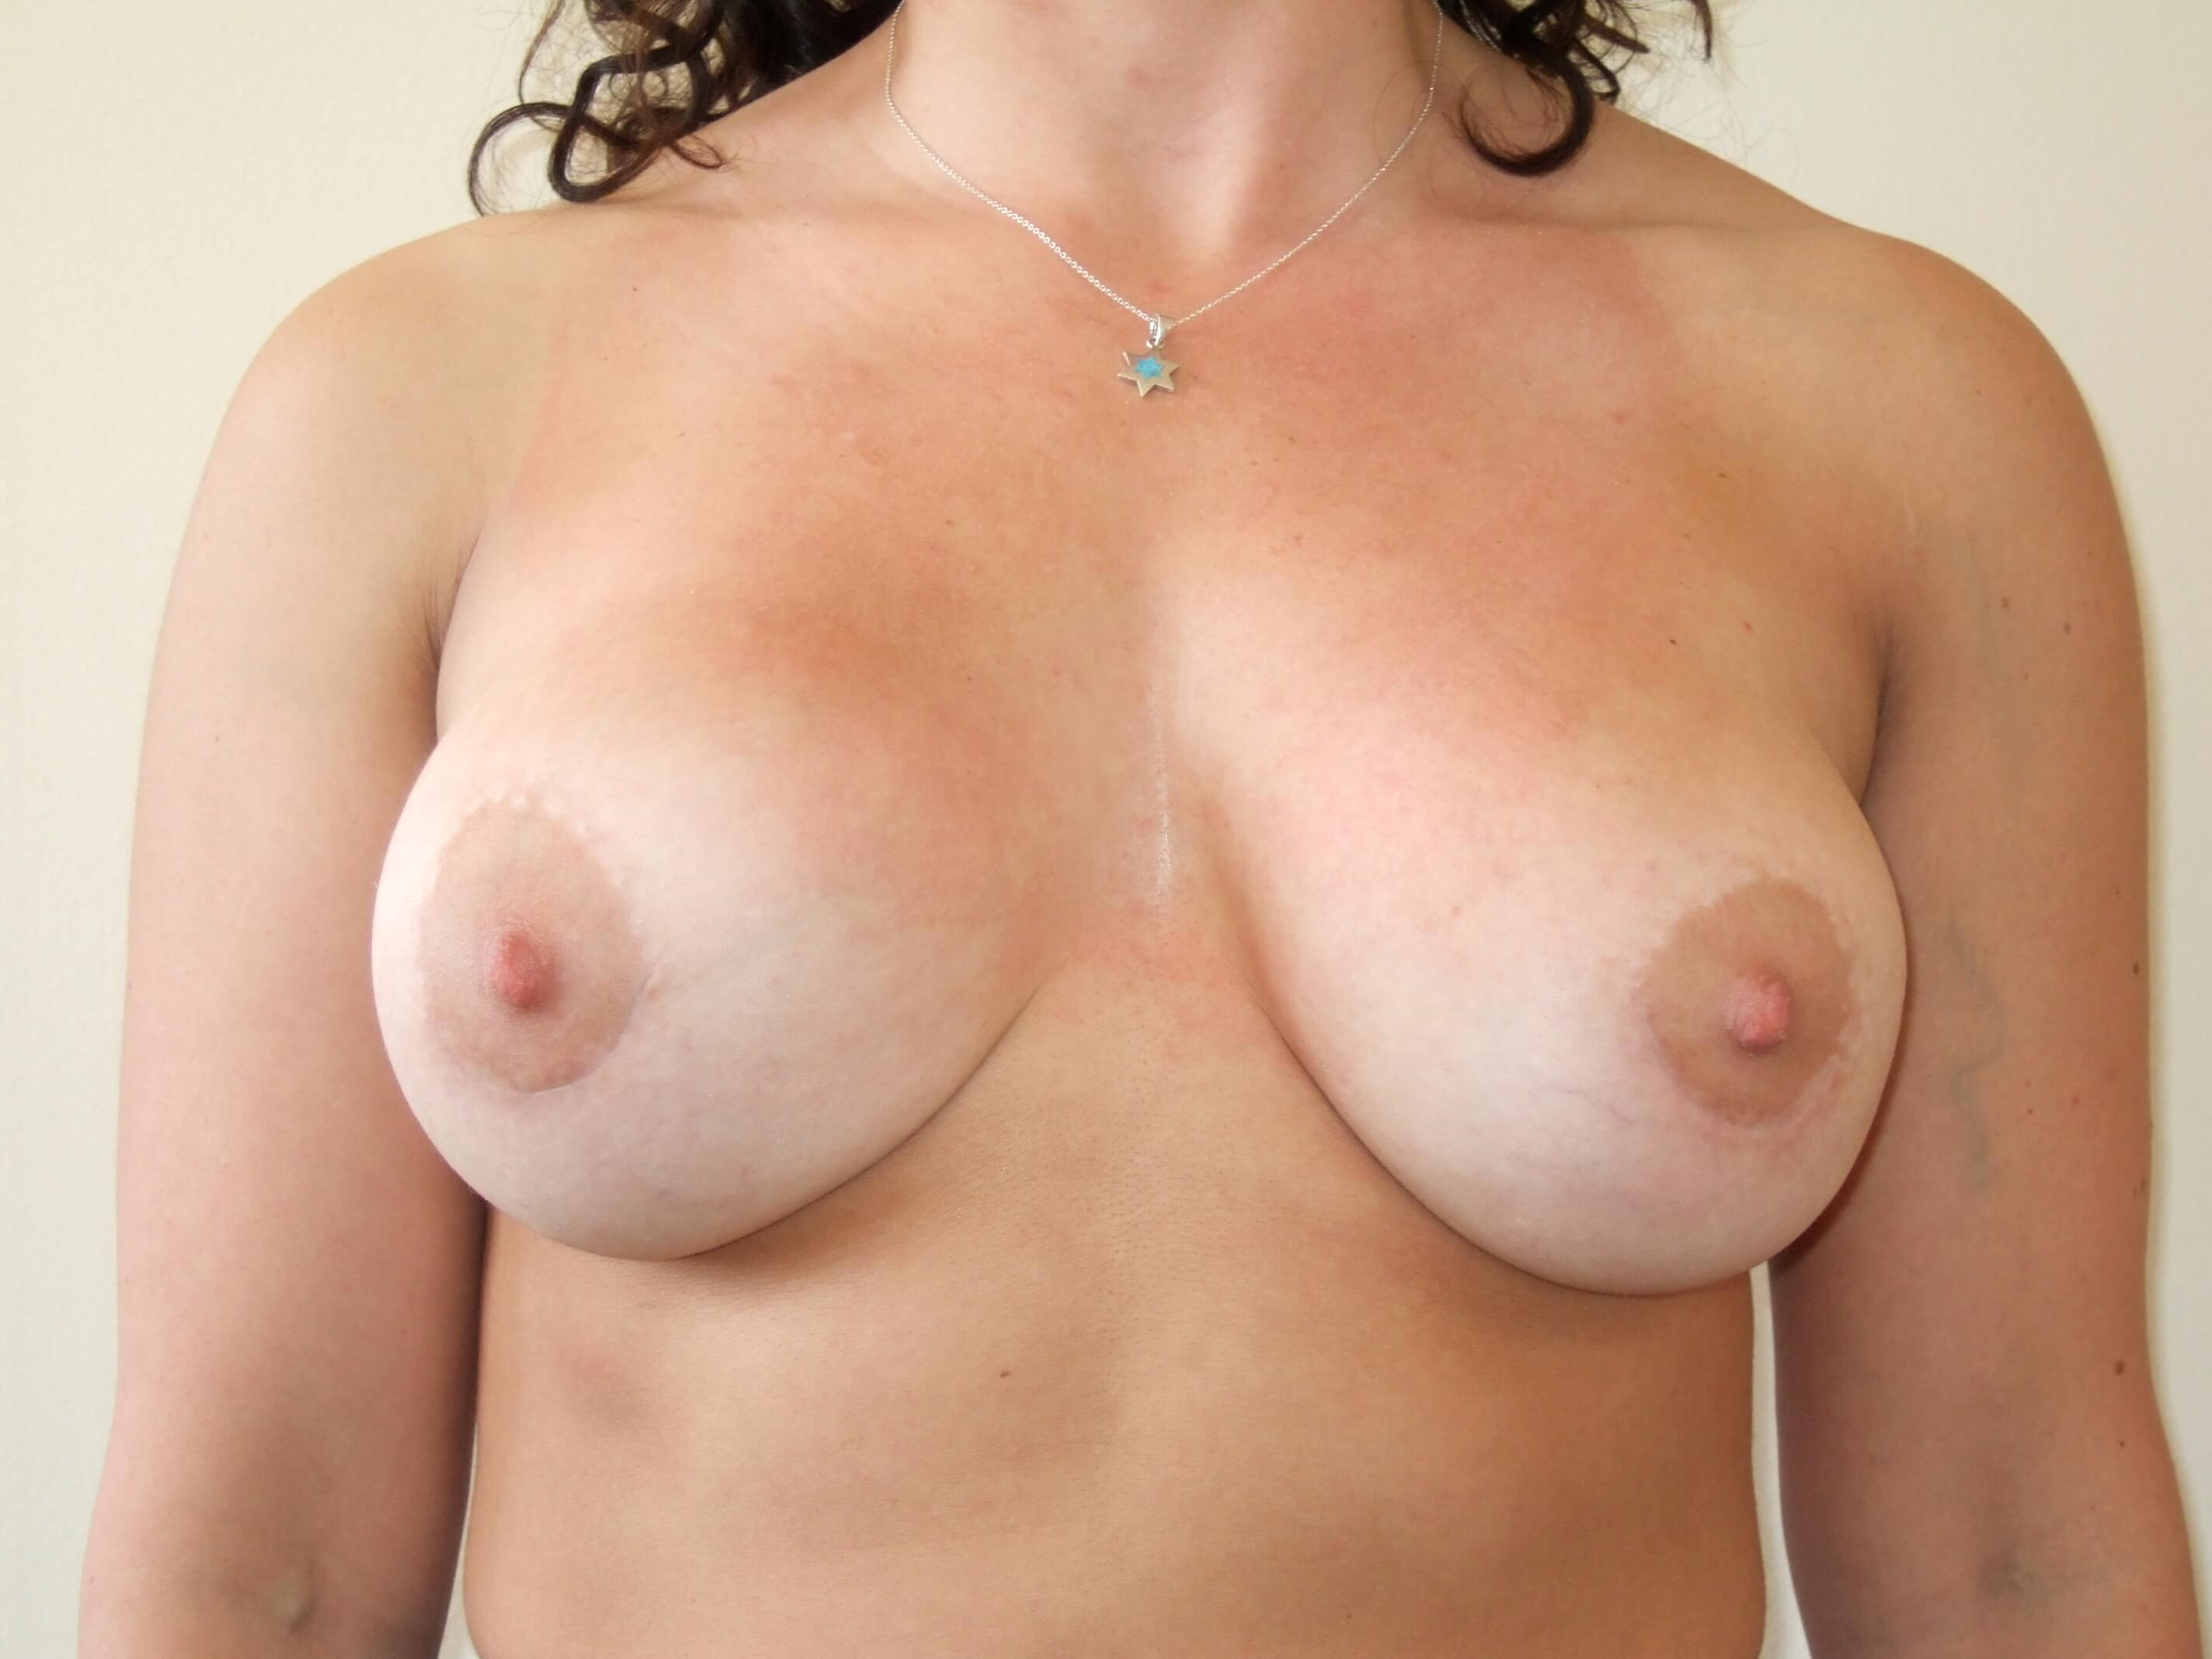 Breast Revision Surgery After Capsulectomy